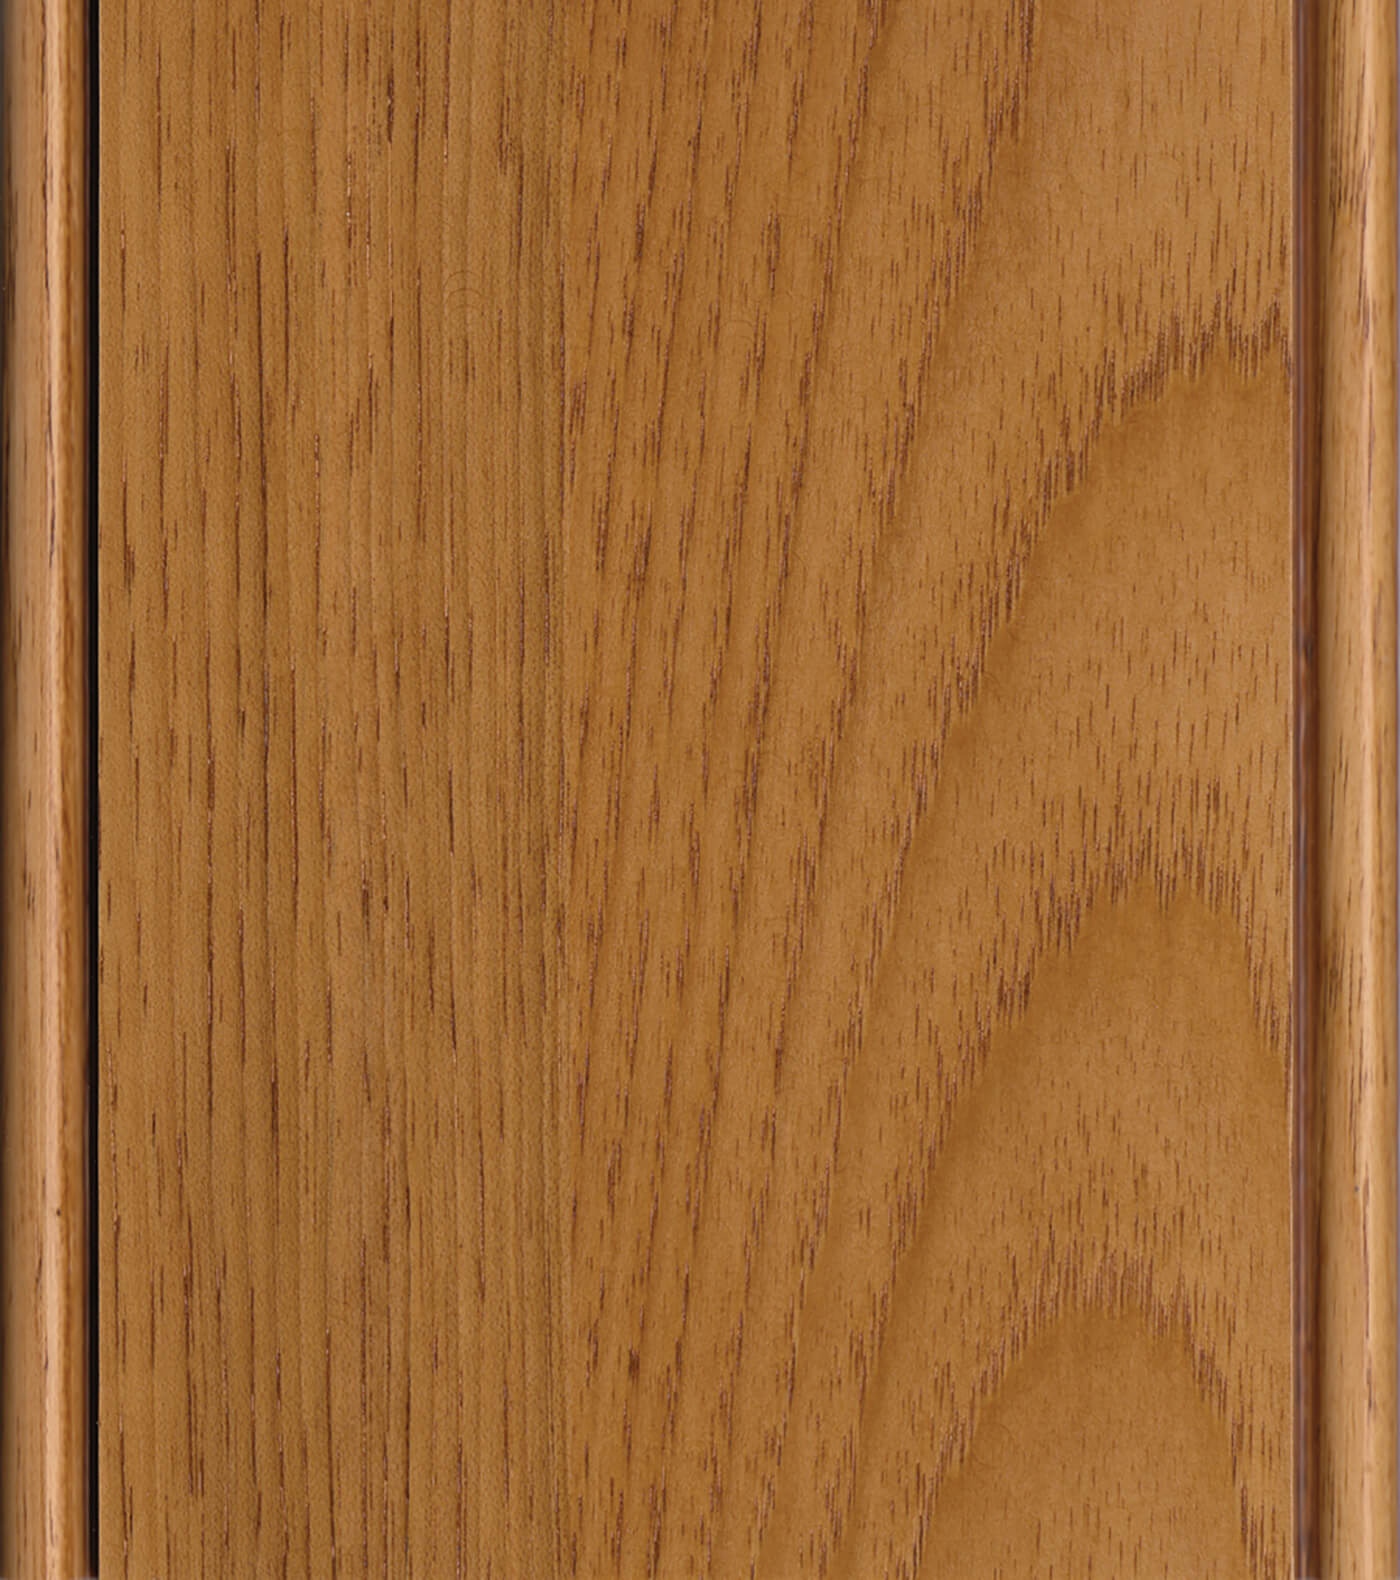 Butternut Stain on Hickory or Rustic Hickory